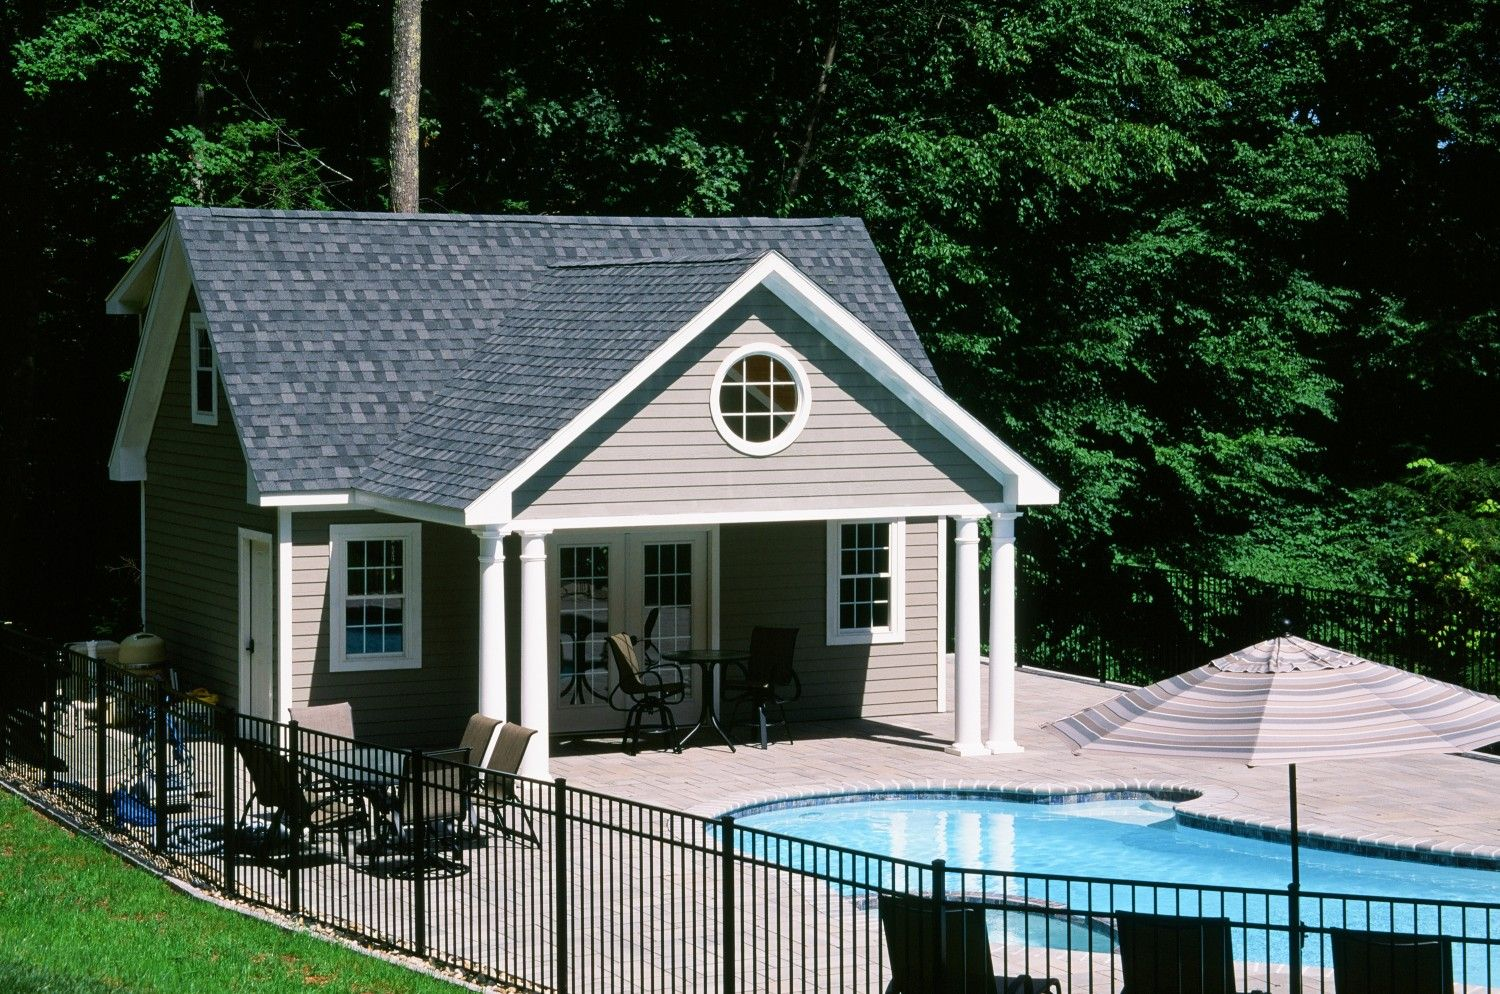 Styles Grand Victorian Cape Dutch Garage Post Beam Custom The Barn Yard Great Country Garages Pool House Pool Shed Pool House Shed